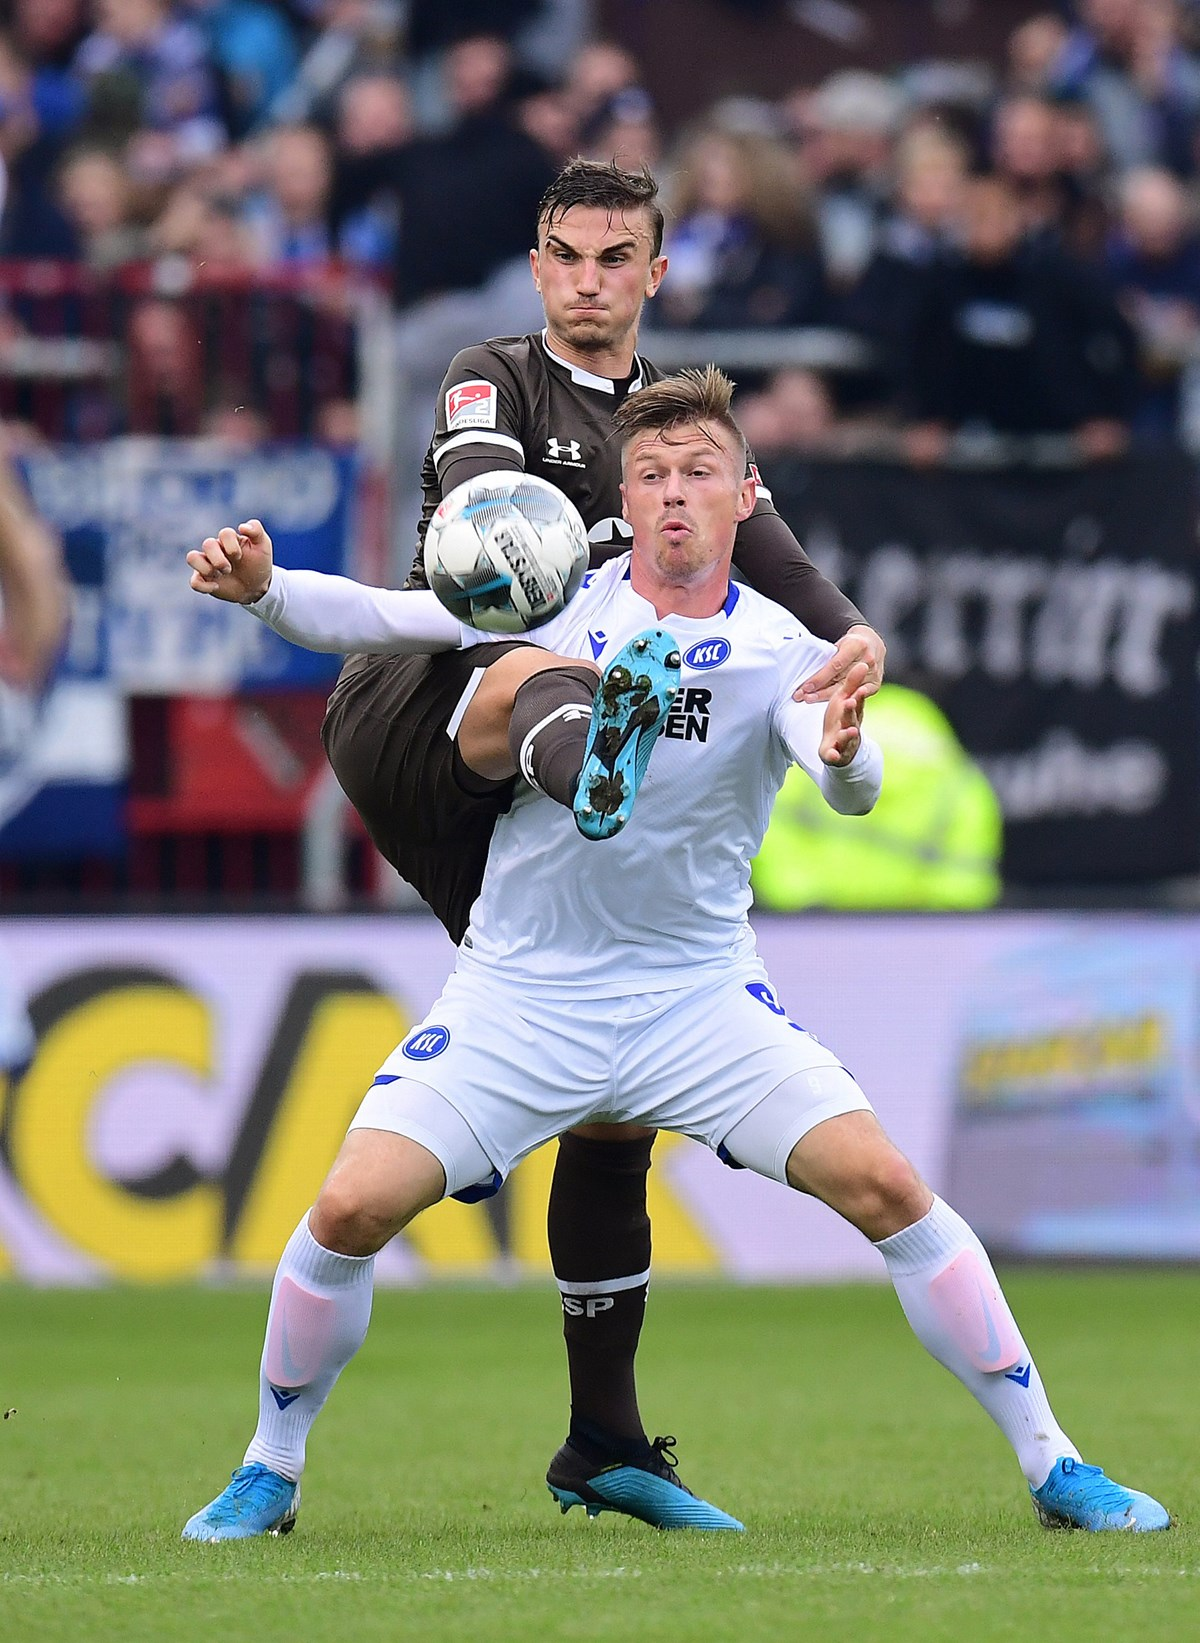 Somewhat unexpectedly, Philipp Ziereis (seen here challenging for the ball with Marvin Pourié) celebrated his return to league action at home against KSC.